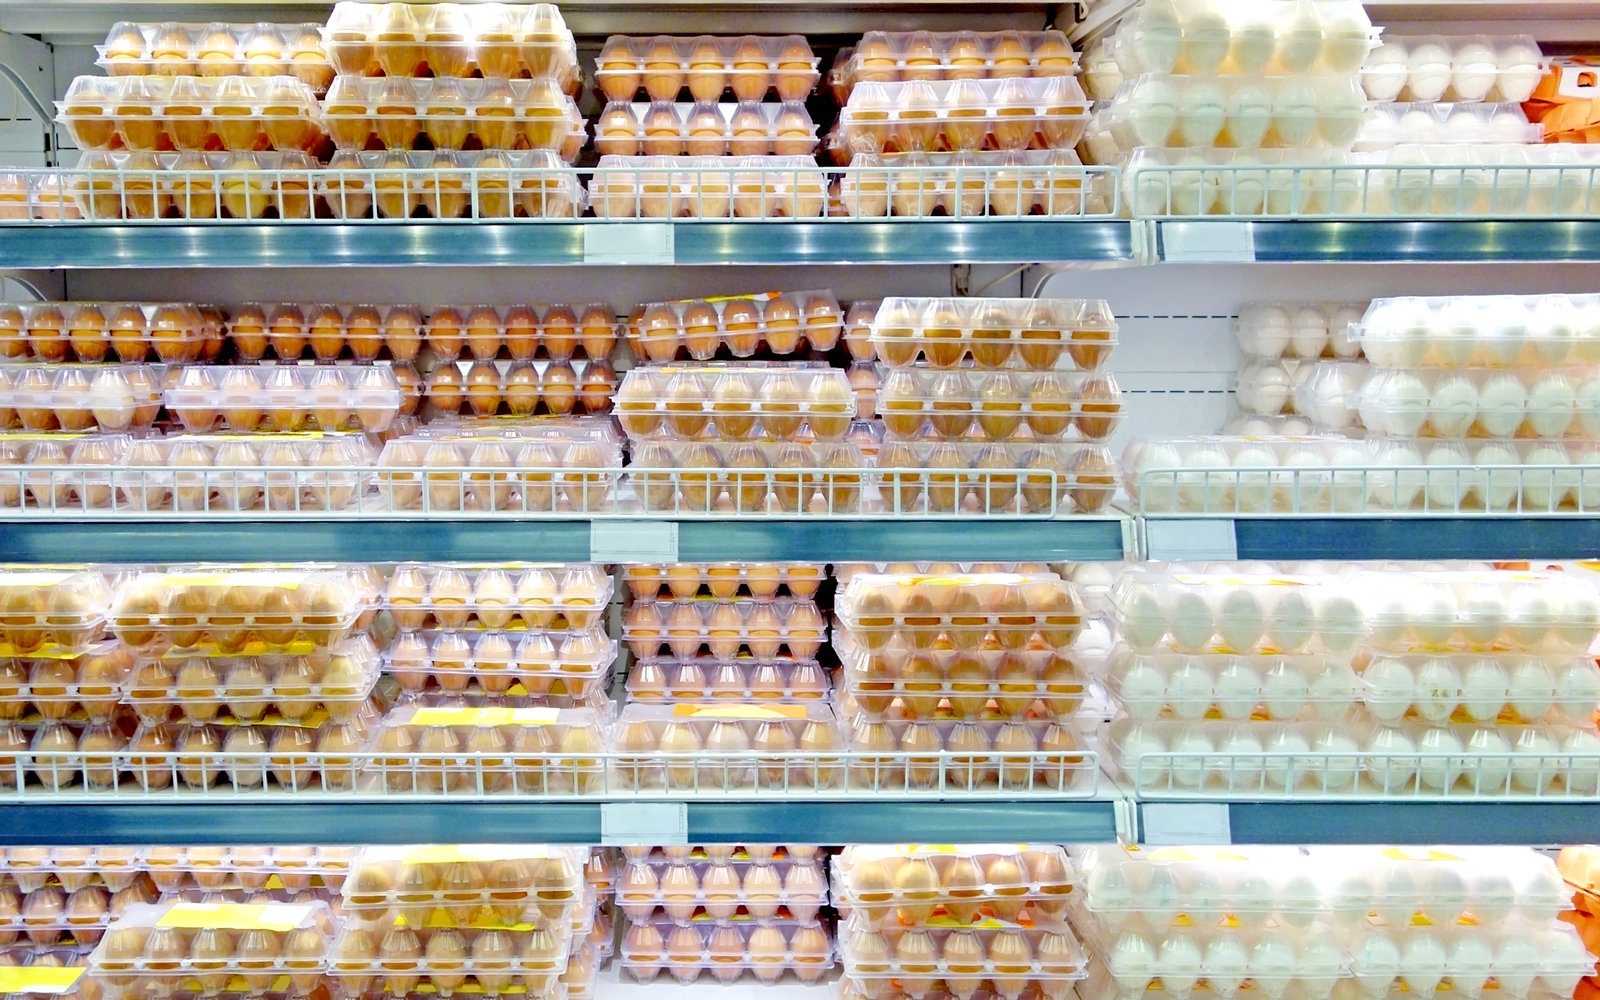 Why We Refrigerate Eggs in the United States and Other Countries Don't